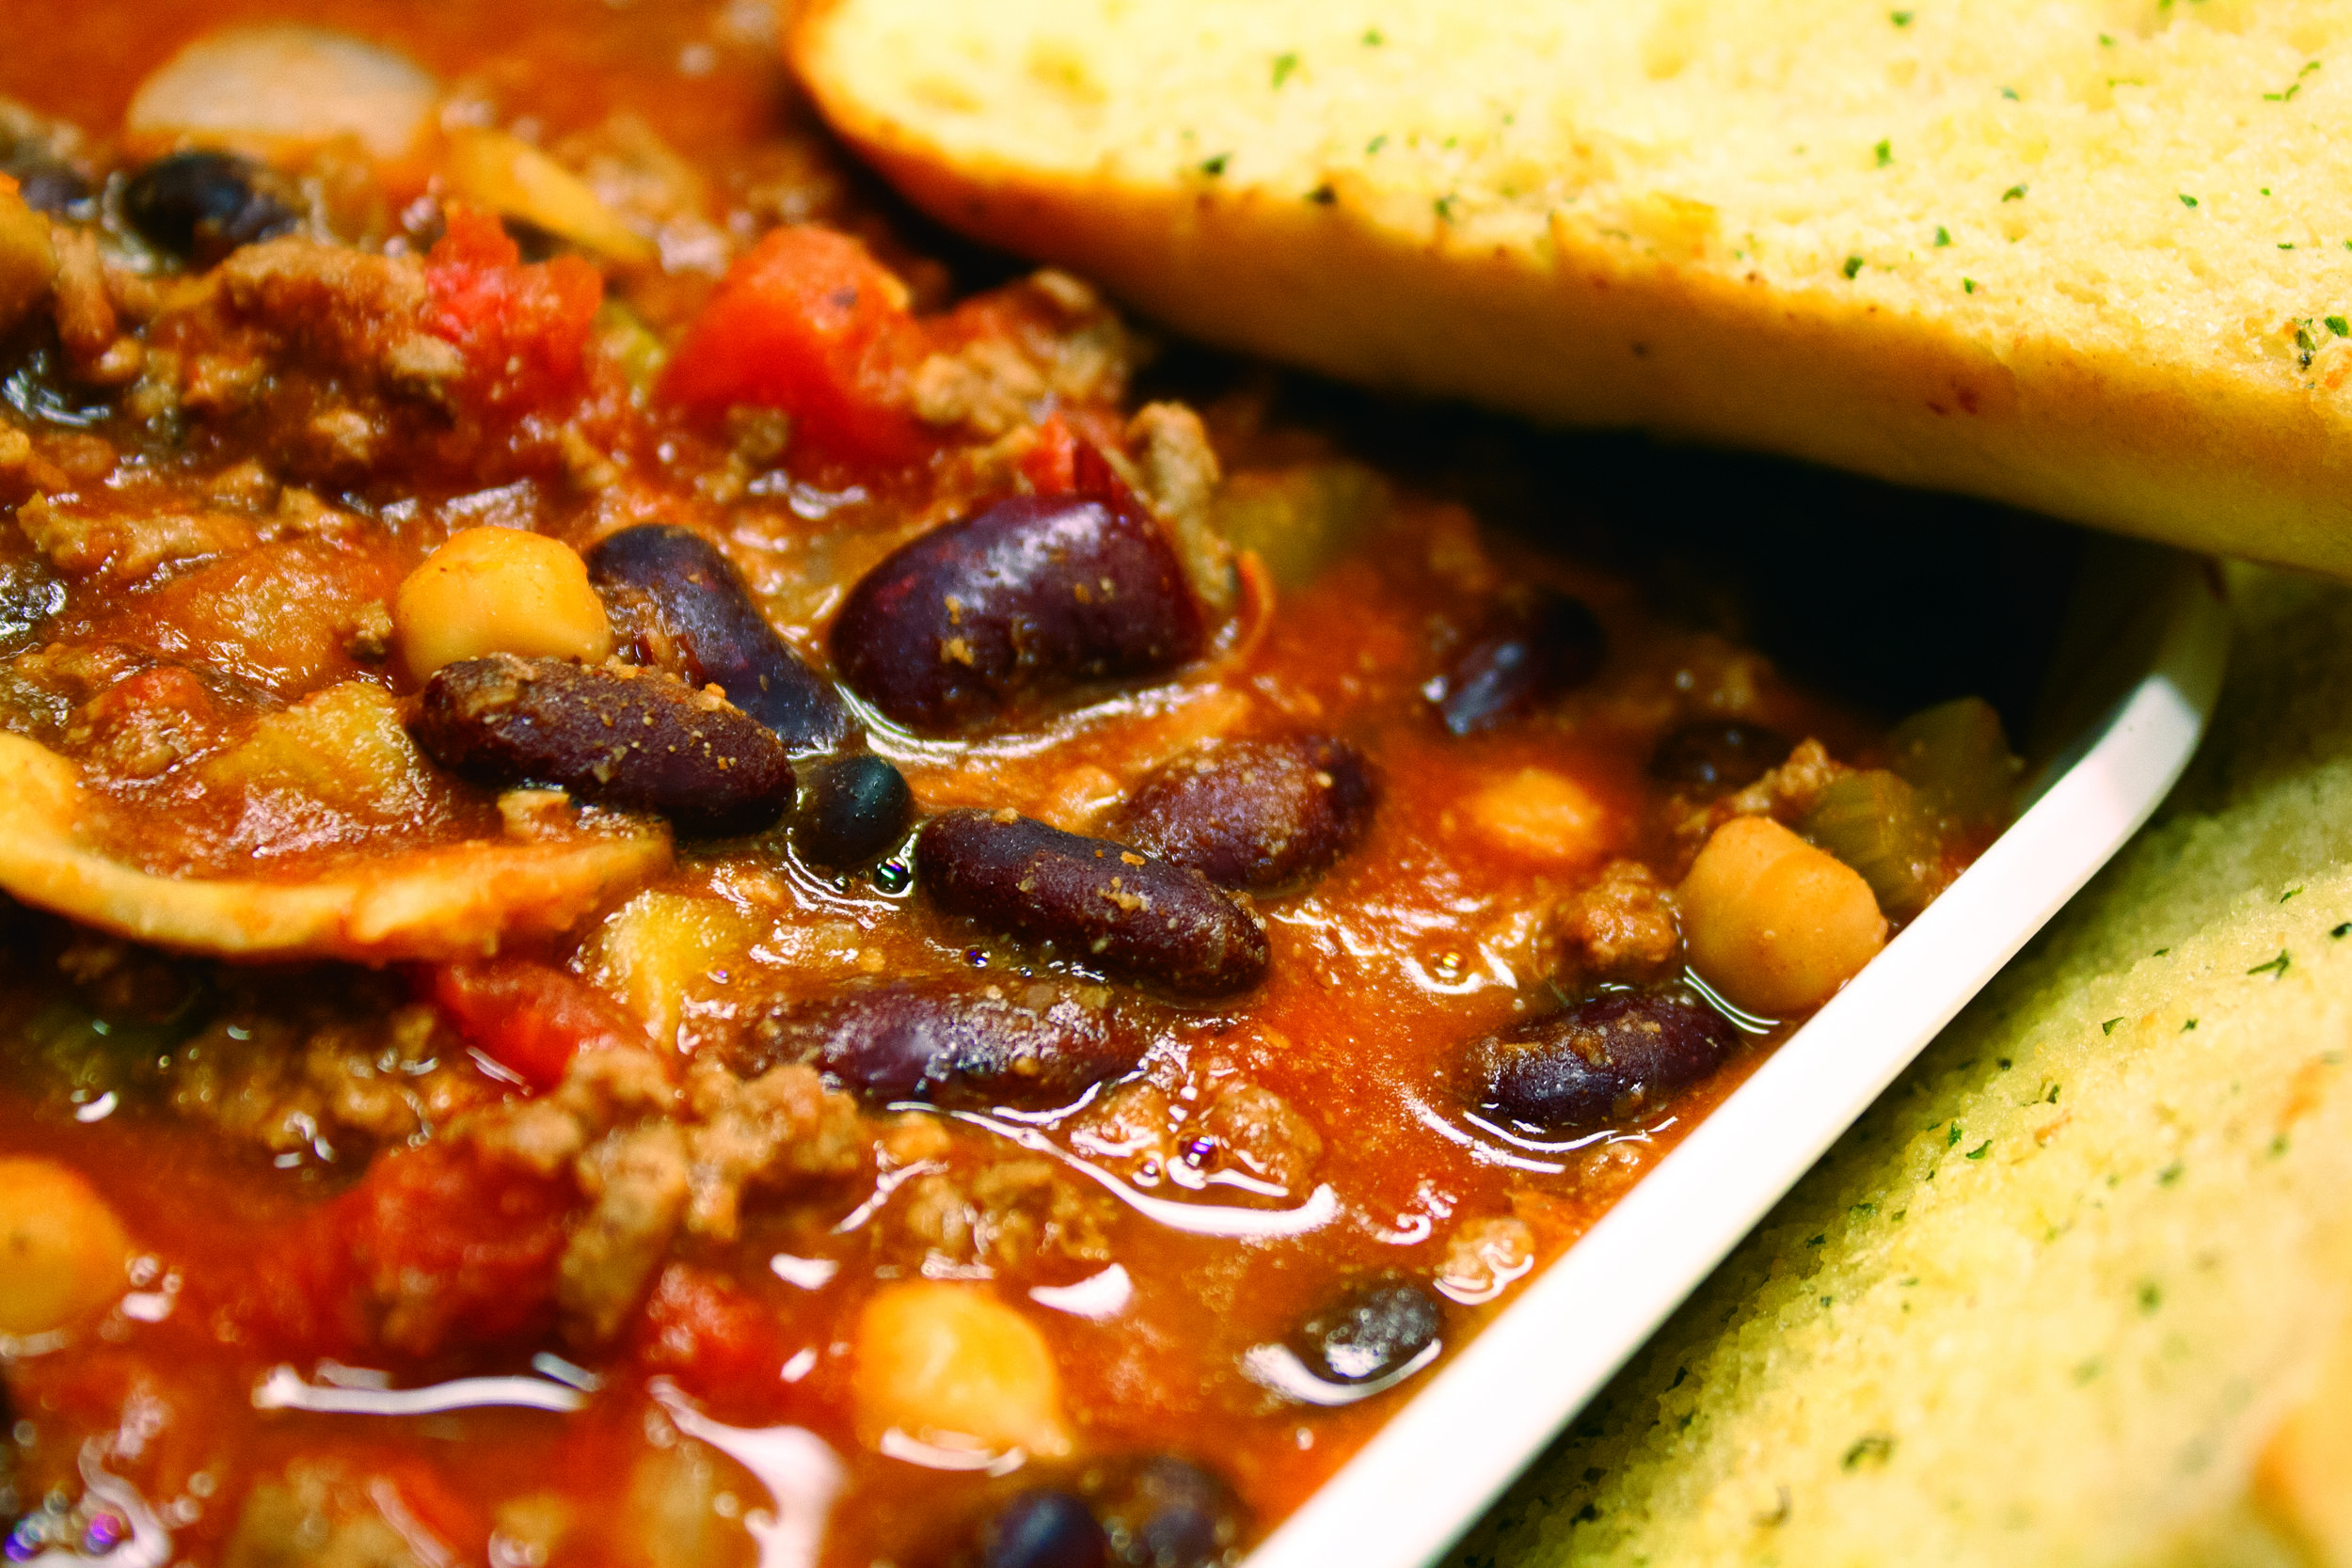 Chili with Garlic Bread  A hearty chili paired perfectly with a garlic bread loaf